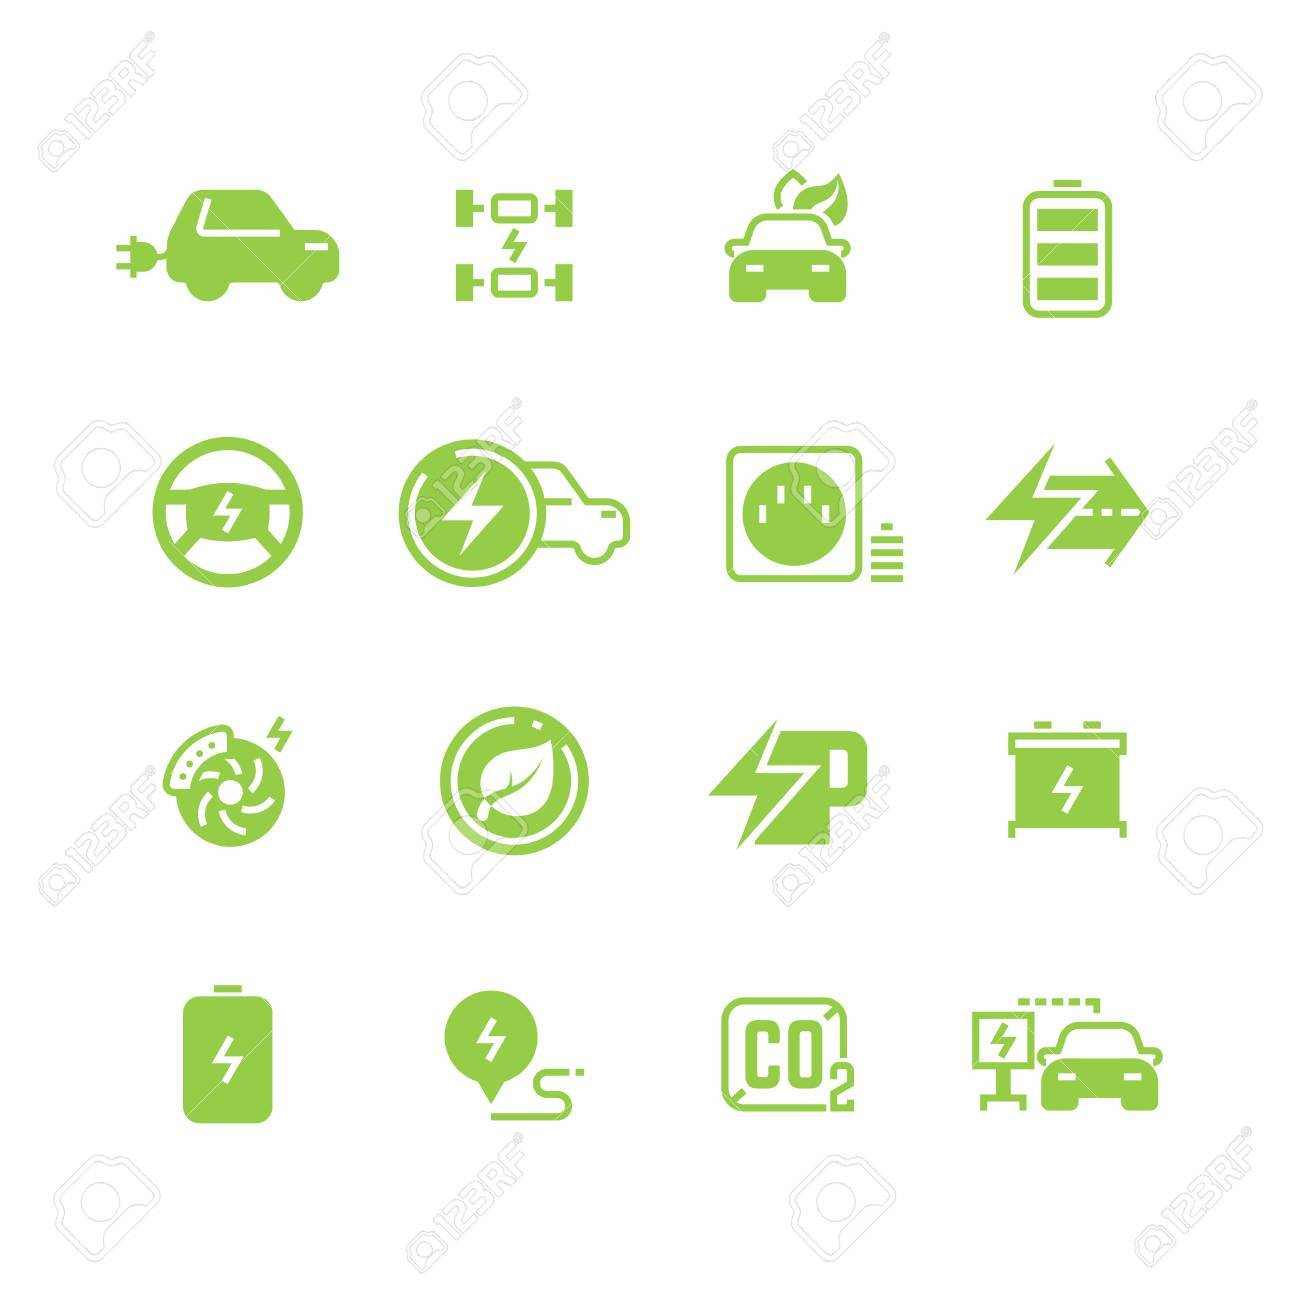 Electrical Charge Symbols And Electric Car Eco Transportation ...